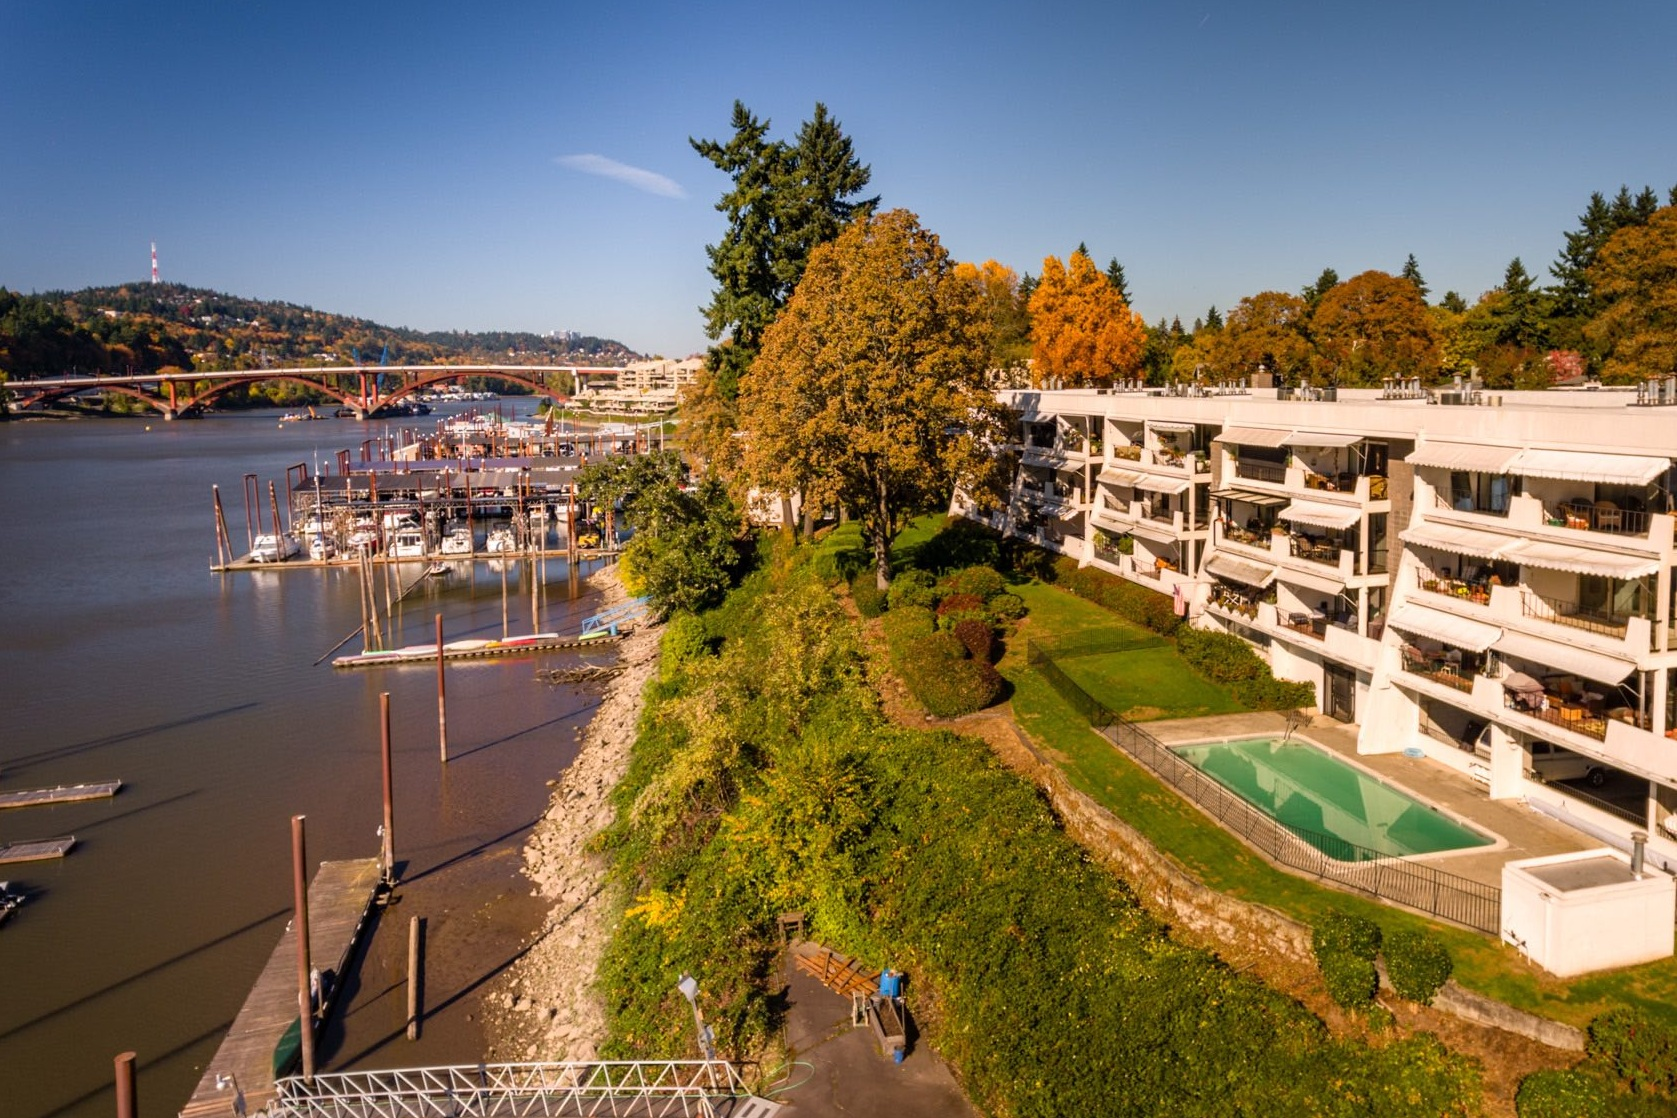 Aerial view of Quayside condos with Sellwood bridge in the background.